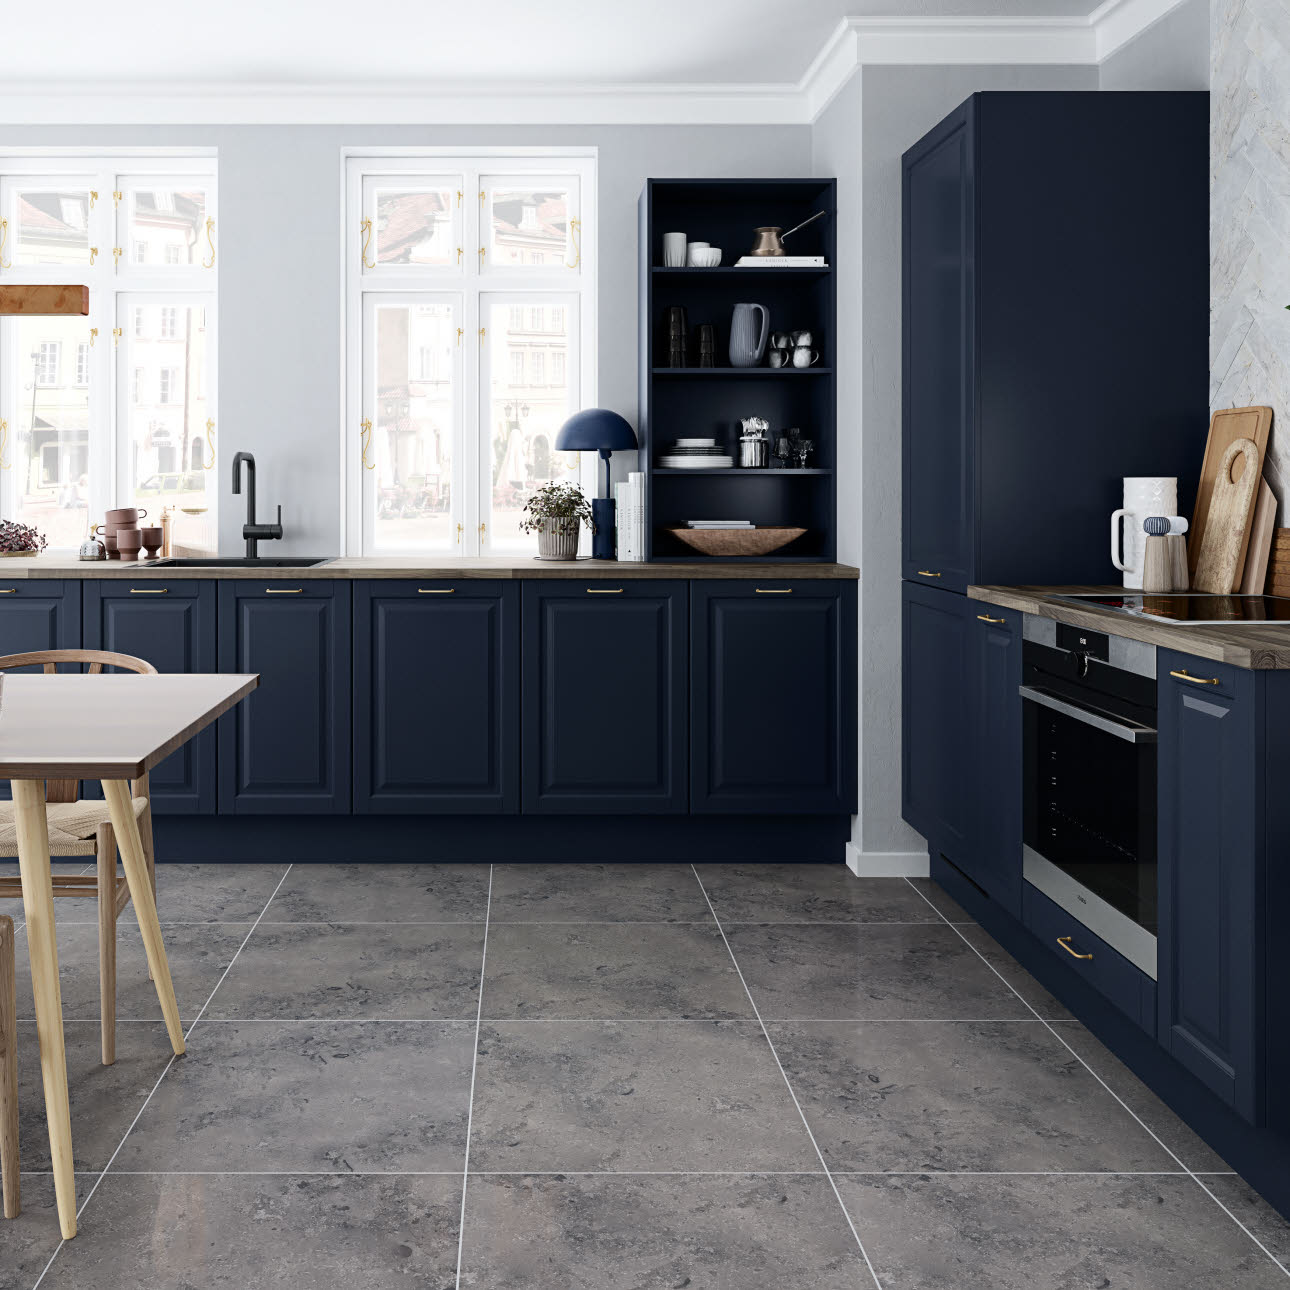 Scandinavian Kitchens Find Your Style Here: Kitchen Design For Modern Life: Find Your New Kitchen